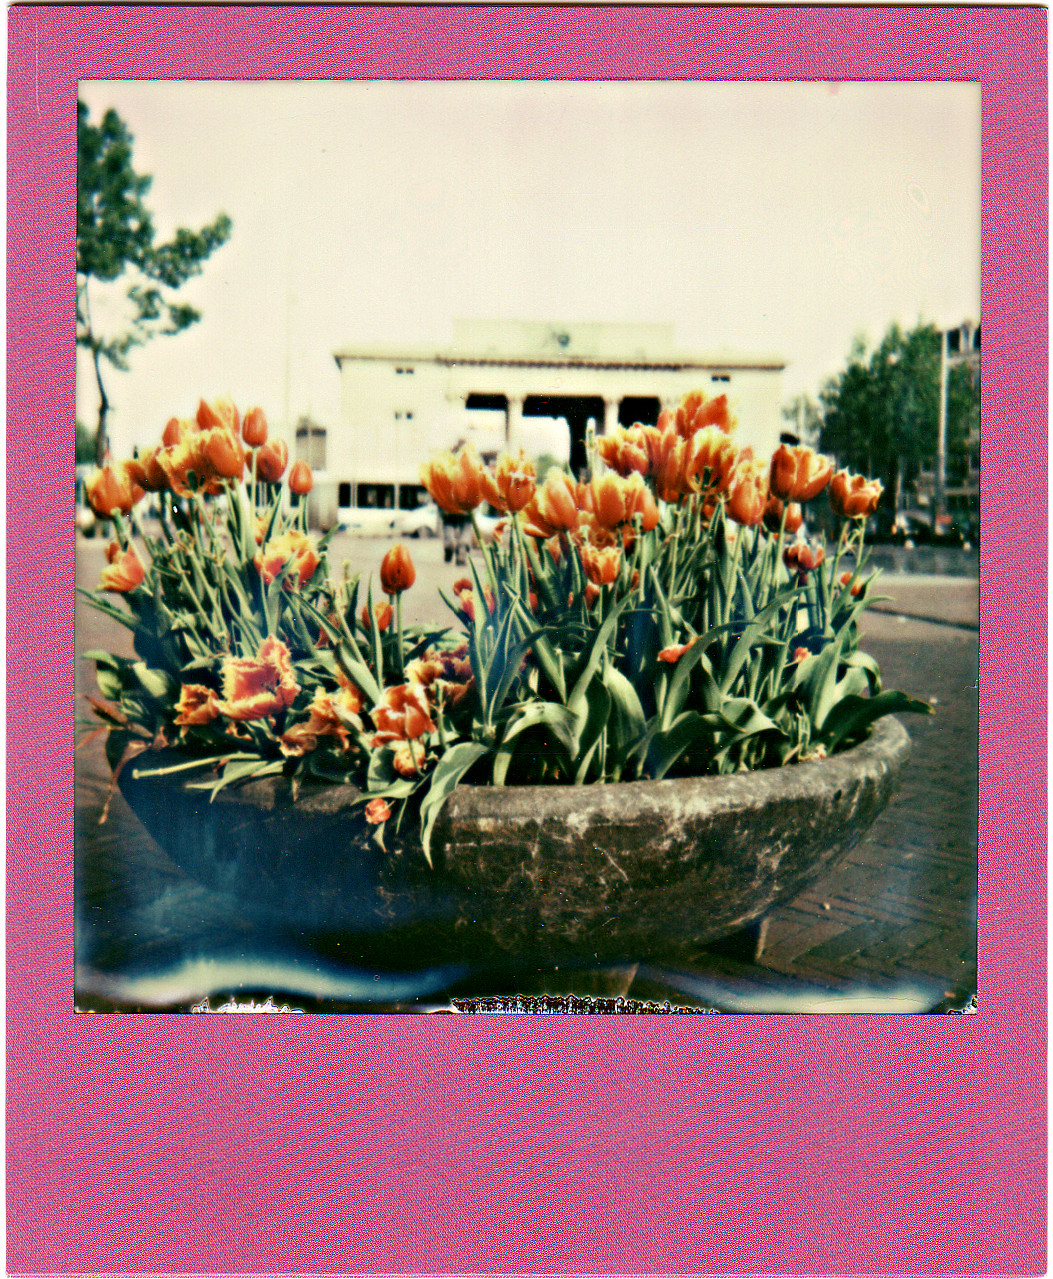 A bed of tulips